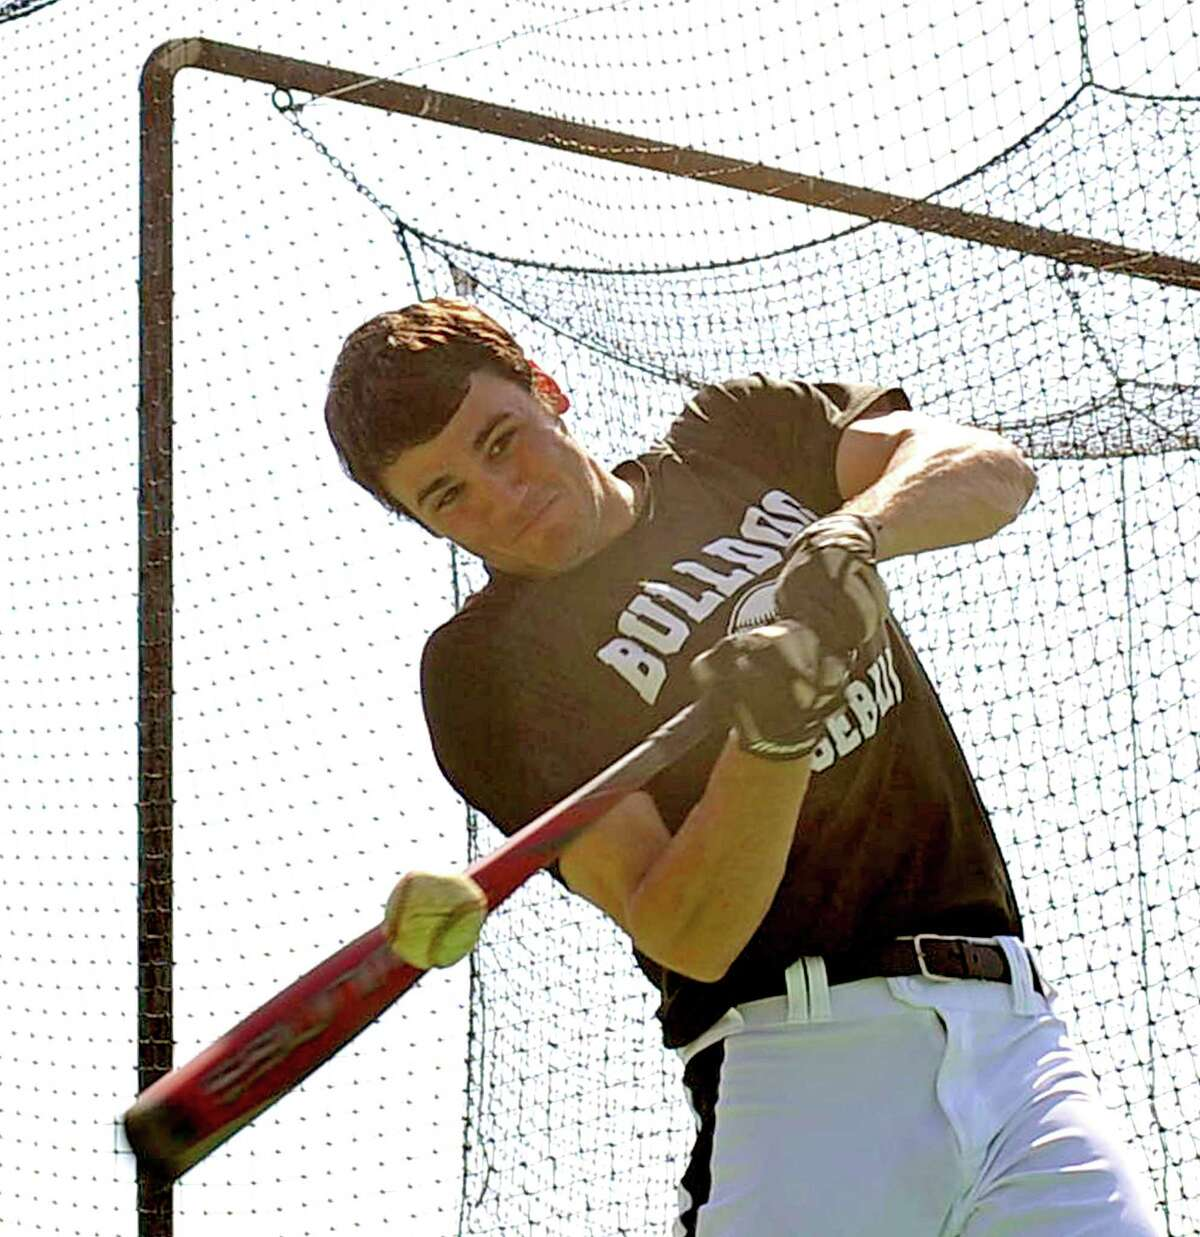 On Monday, the Nederland Bulldogs took to the field in preparation for their next game. Pitcher #18, Carson Raines, gets in some batting practice. The Nederland Baseball team, which is 12-2-2 this year and 2-0 in District 20-4A, will play the Little Cypress-Mauriceville Bears at 7 p.m. Tuesday March 19, 2013 Dave Ryan/The Enterprise